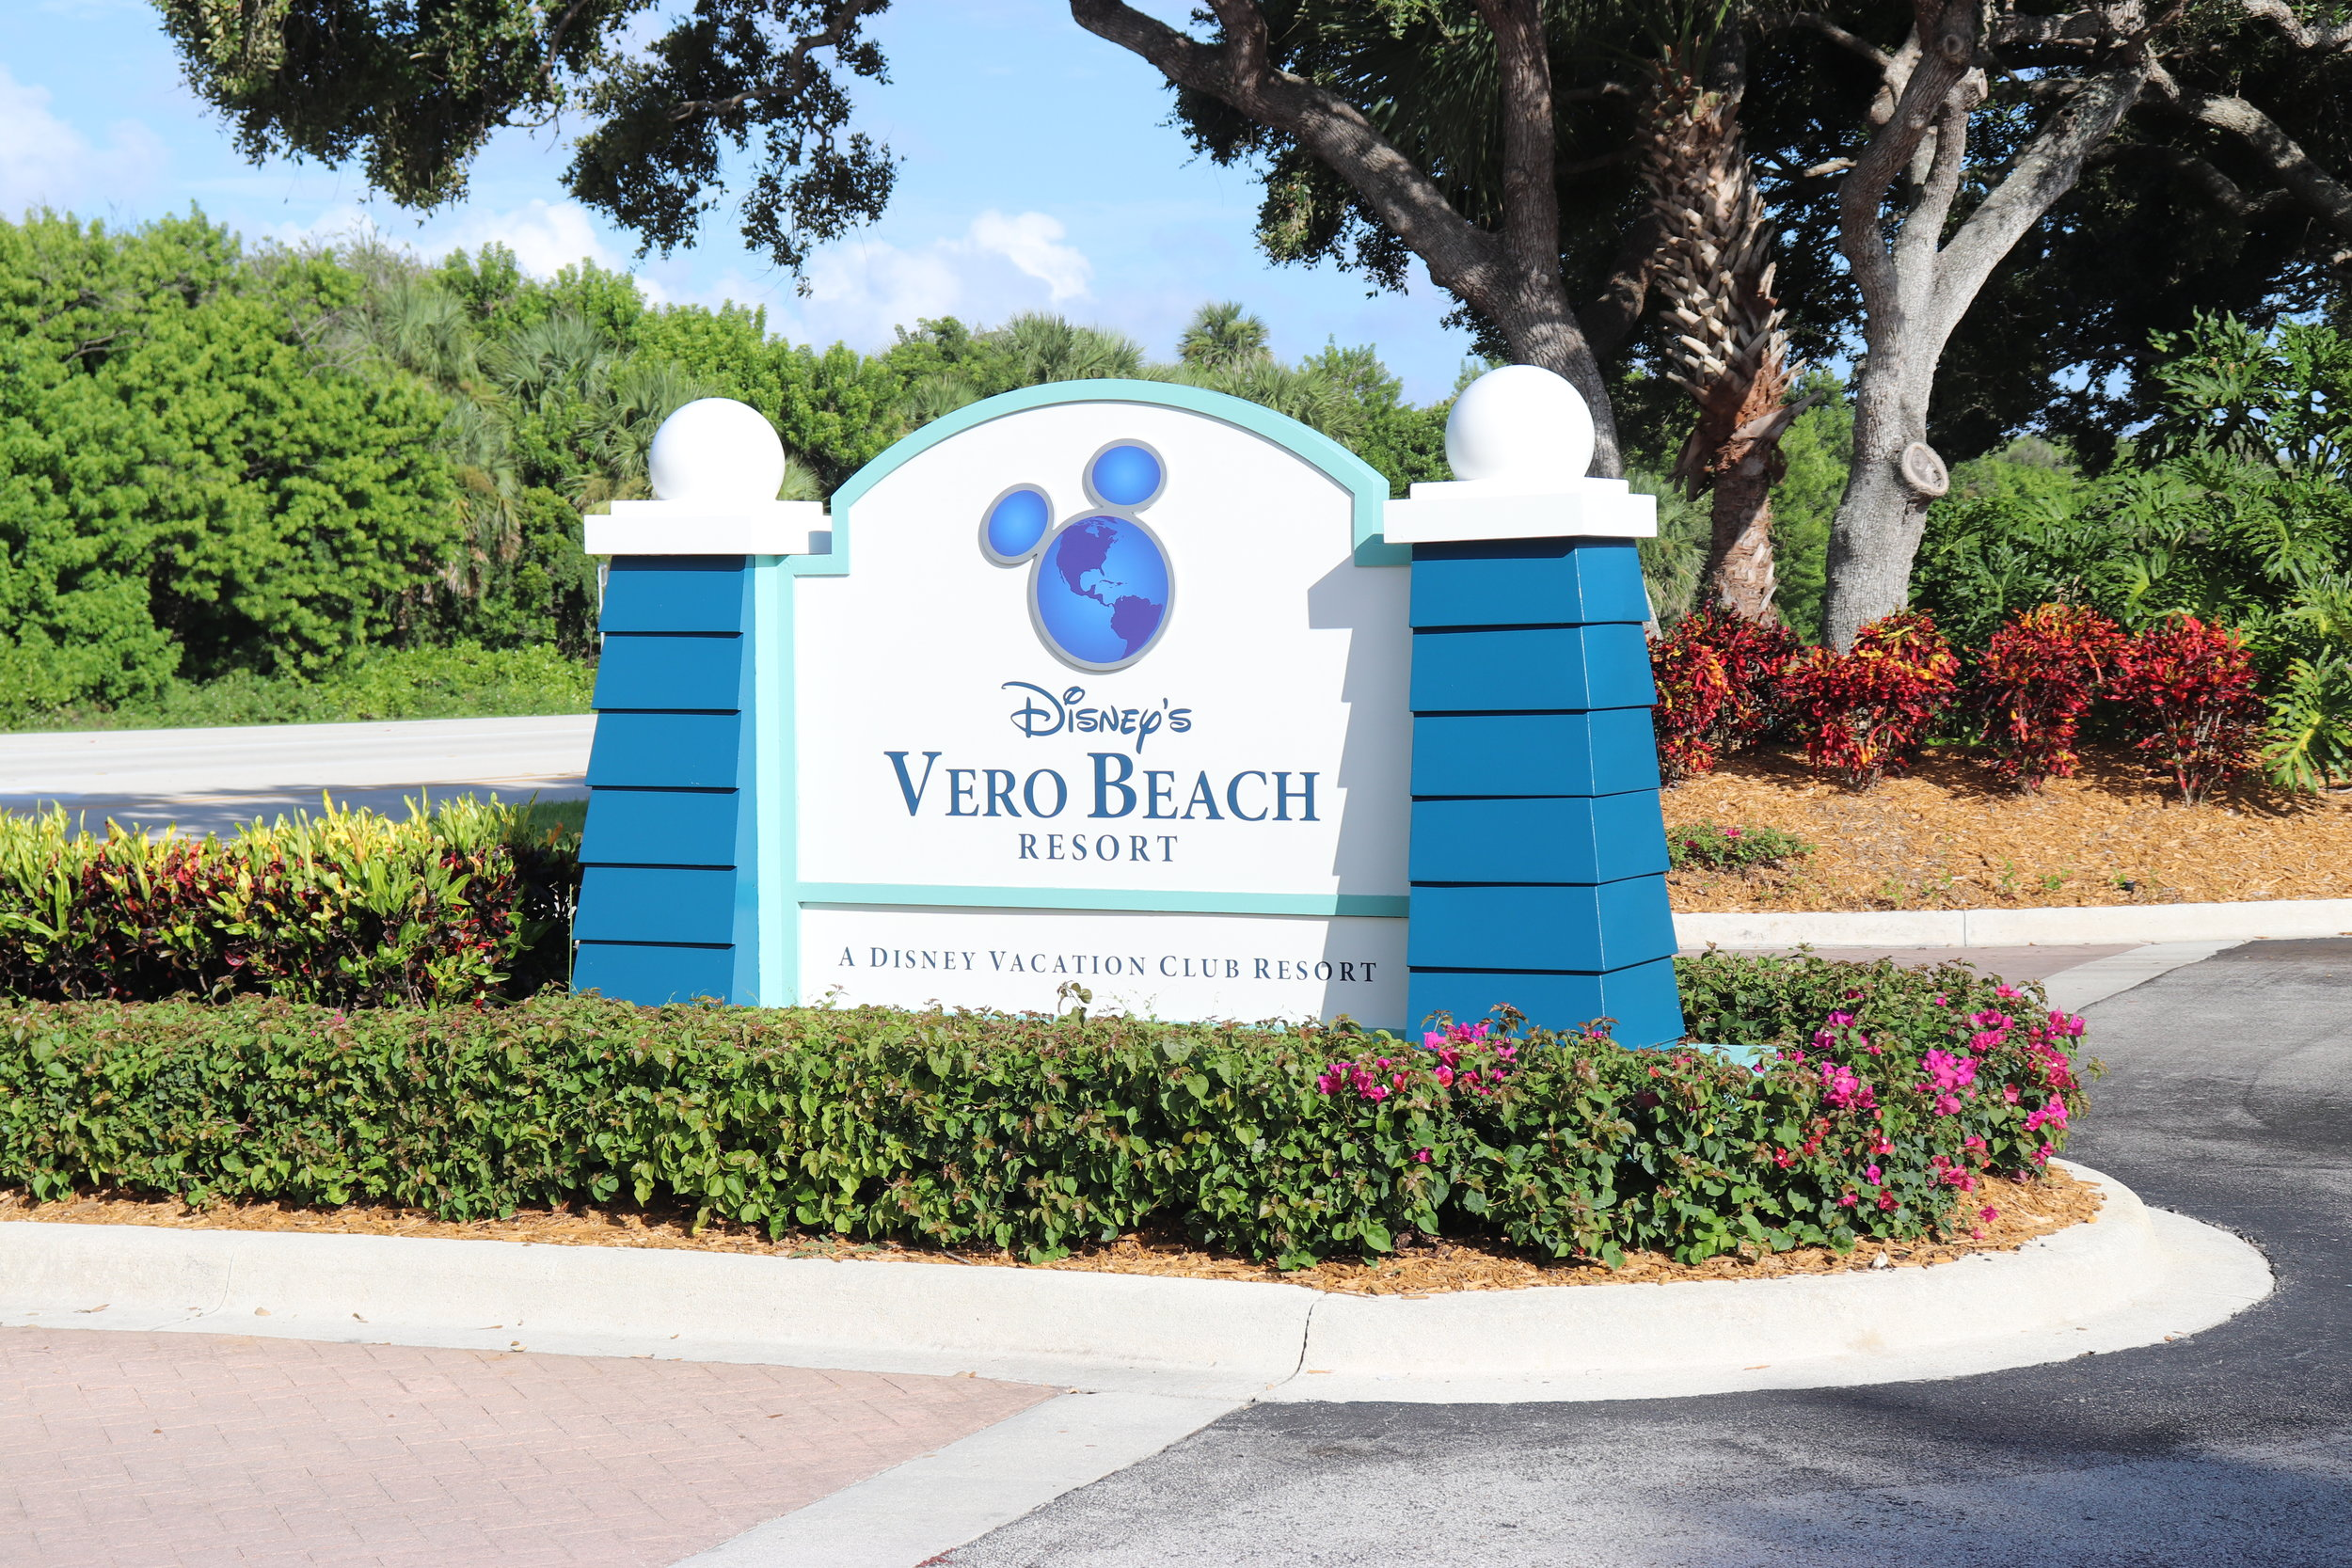 The Welcome sign at the entrance.